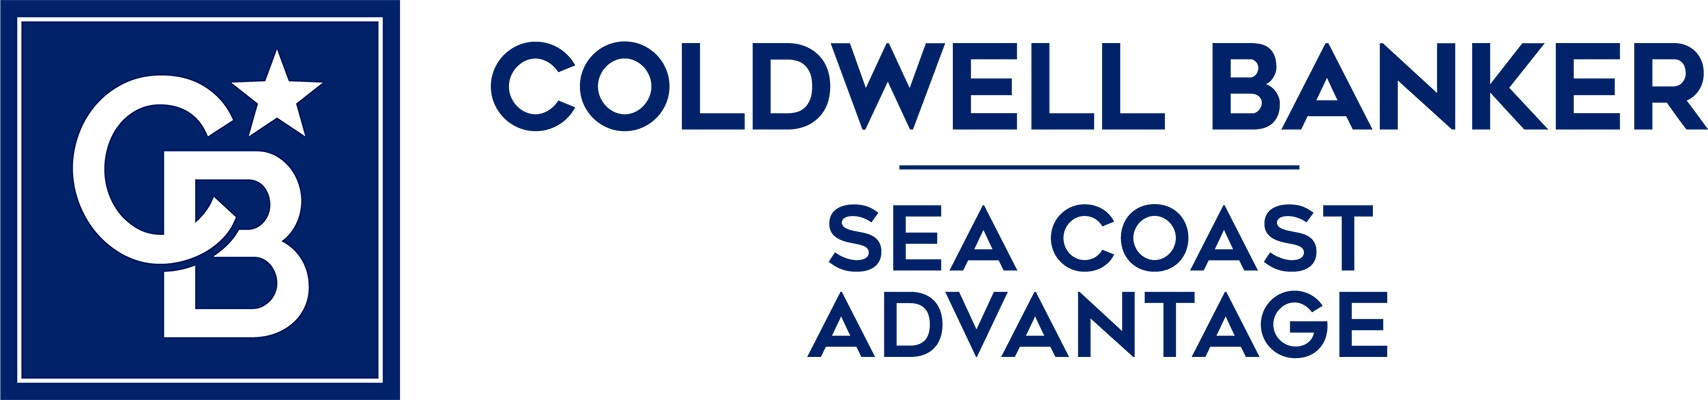 Allison Eagen Donovan - Coldwell Banker Sea Coast Advantage Realty Logo